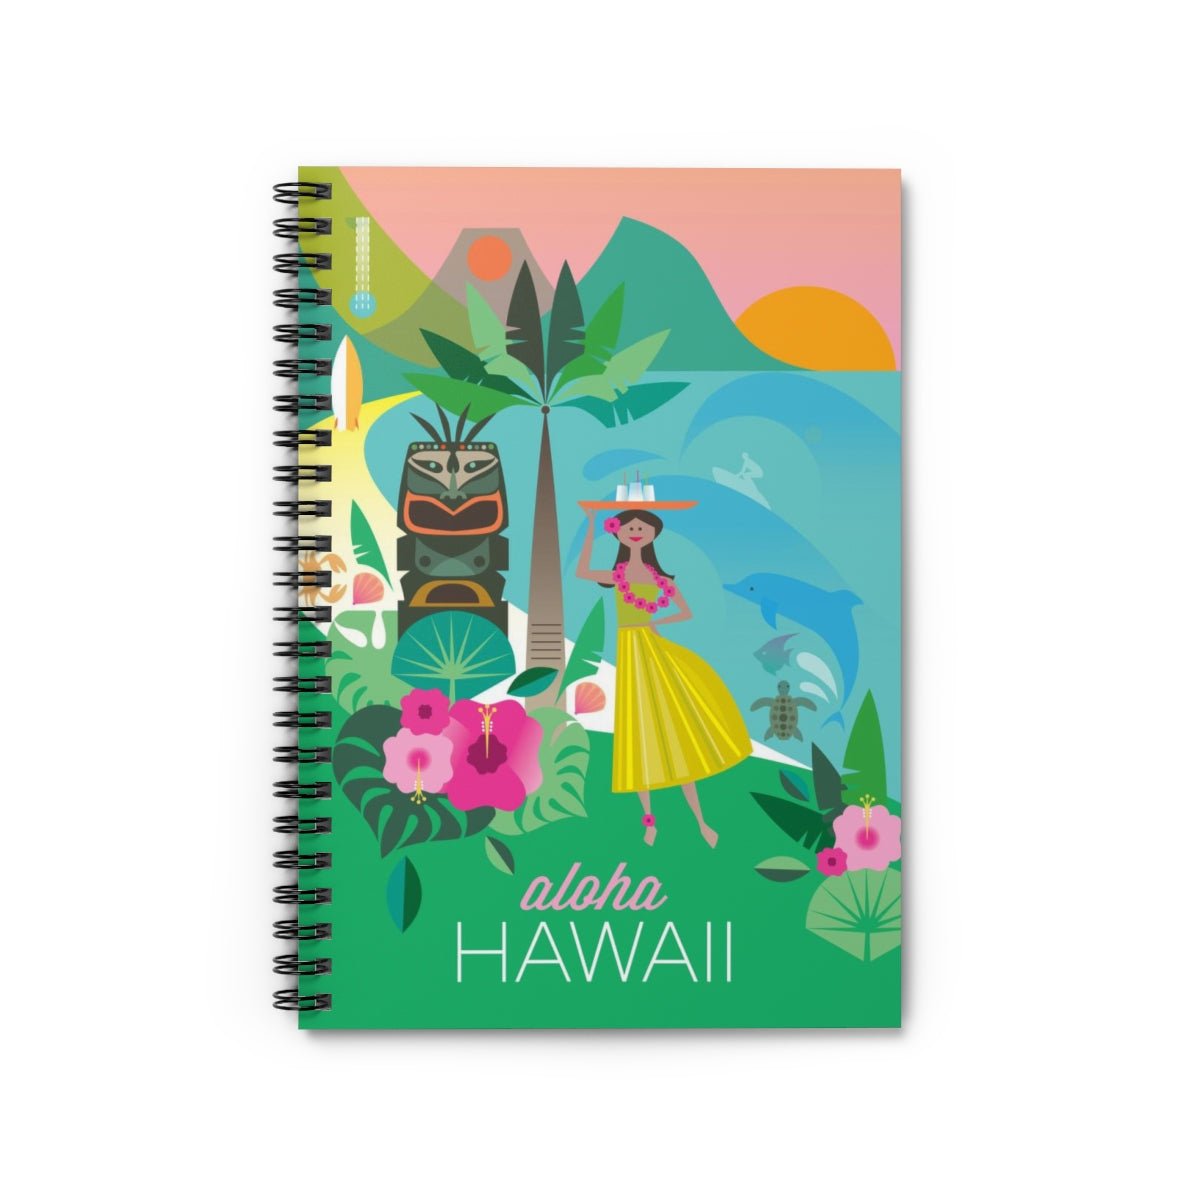 HAWAII JOURNAL